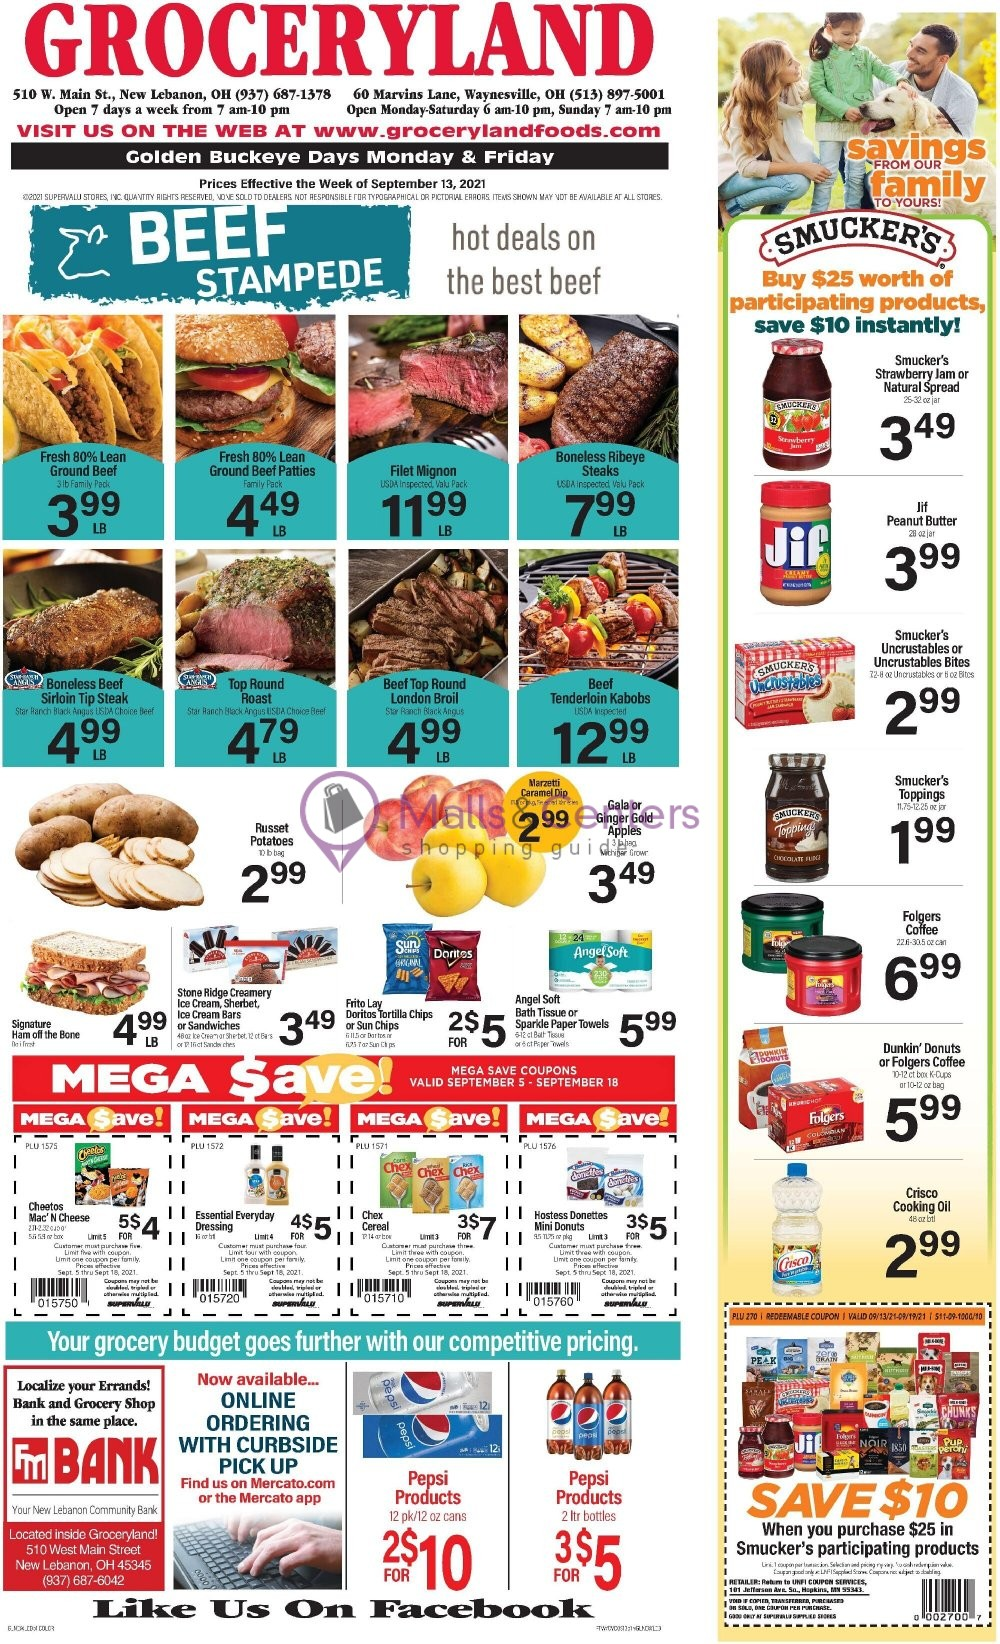 weekly ads Hometown Marketplace - page 1 - mallscenters.com